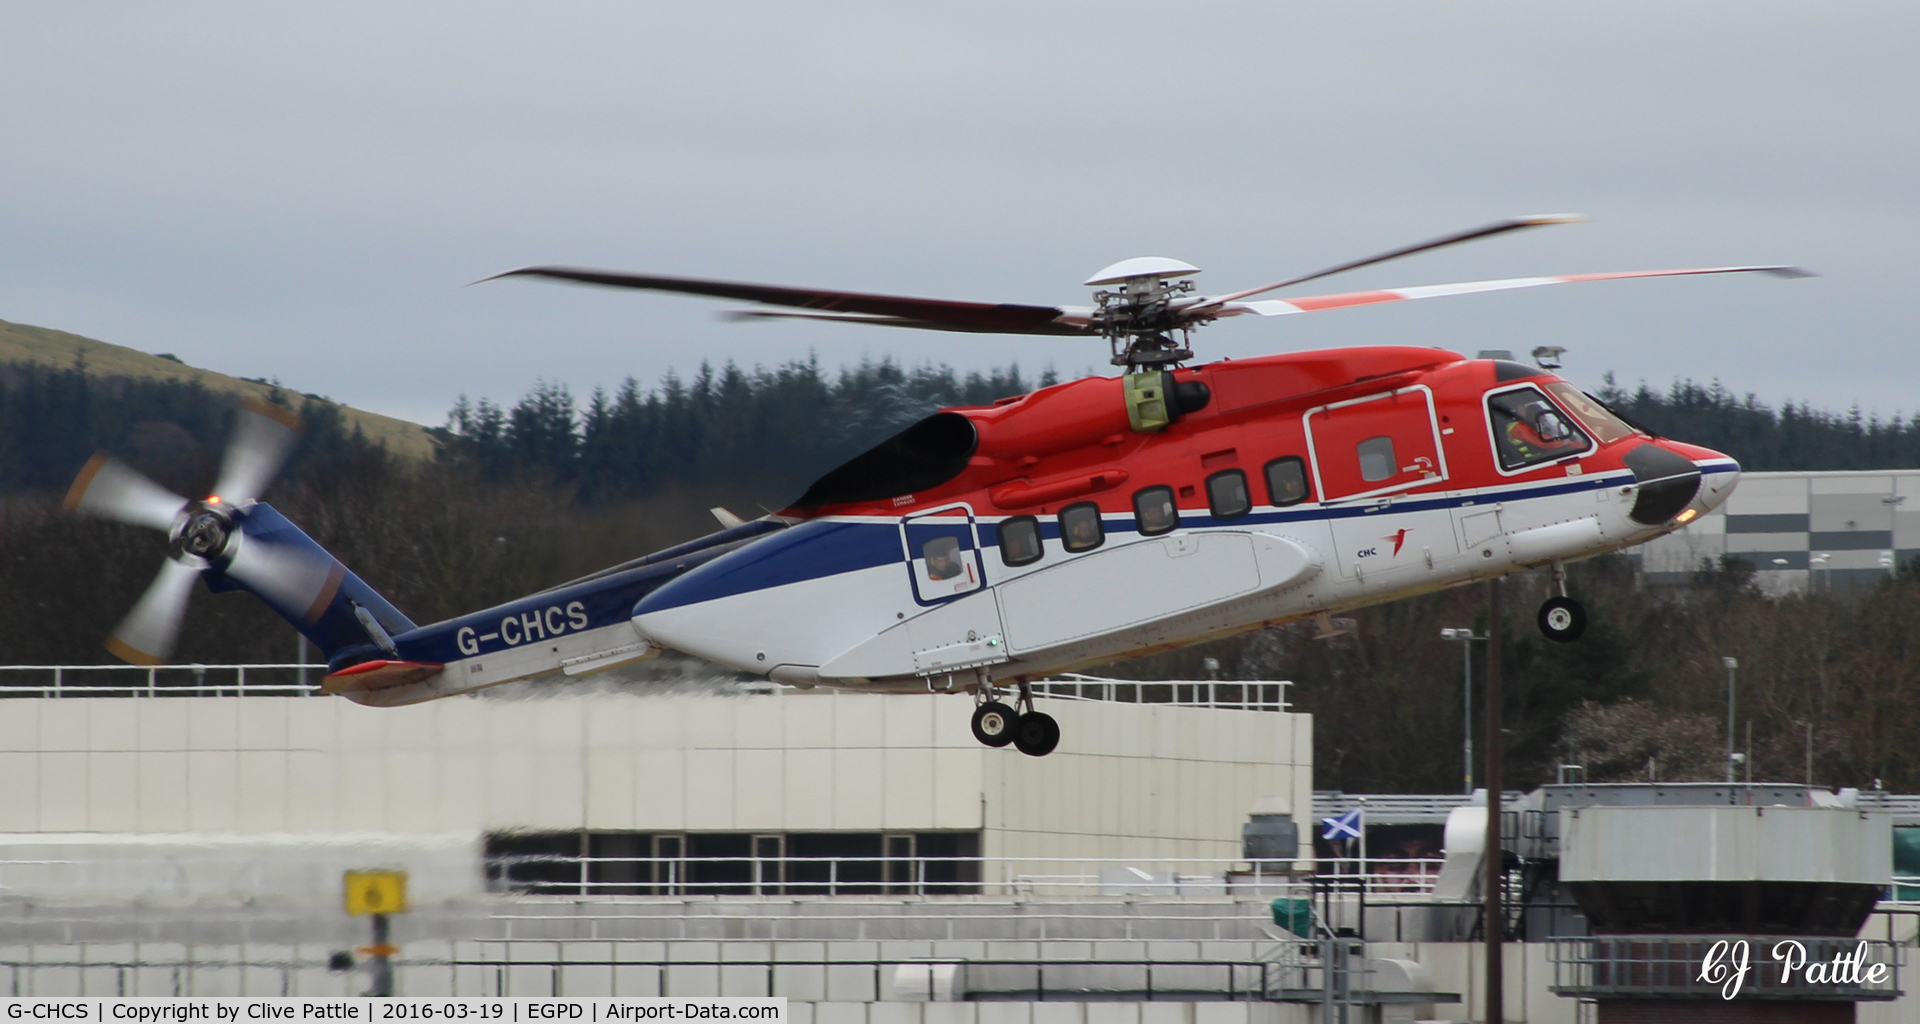 G-CHCS, 2010 Sikorsky S-92A C/N 920125, In action at Aberdeen EGPD